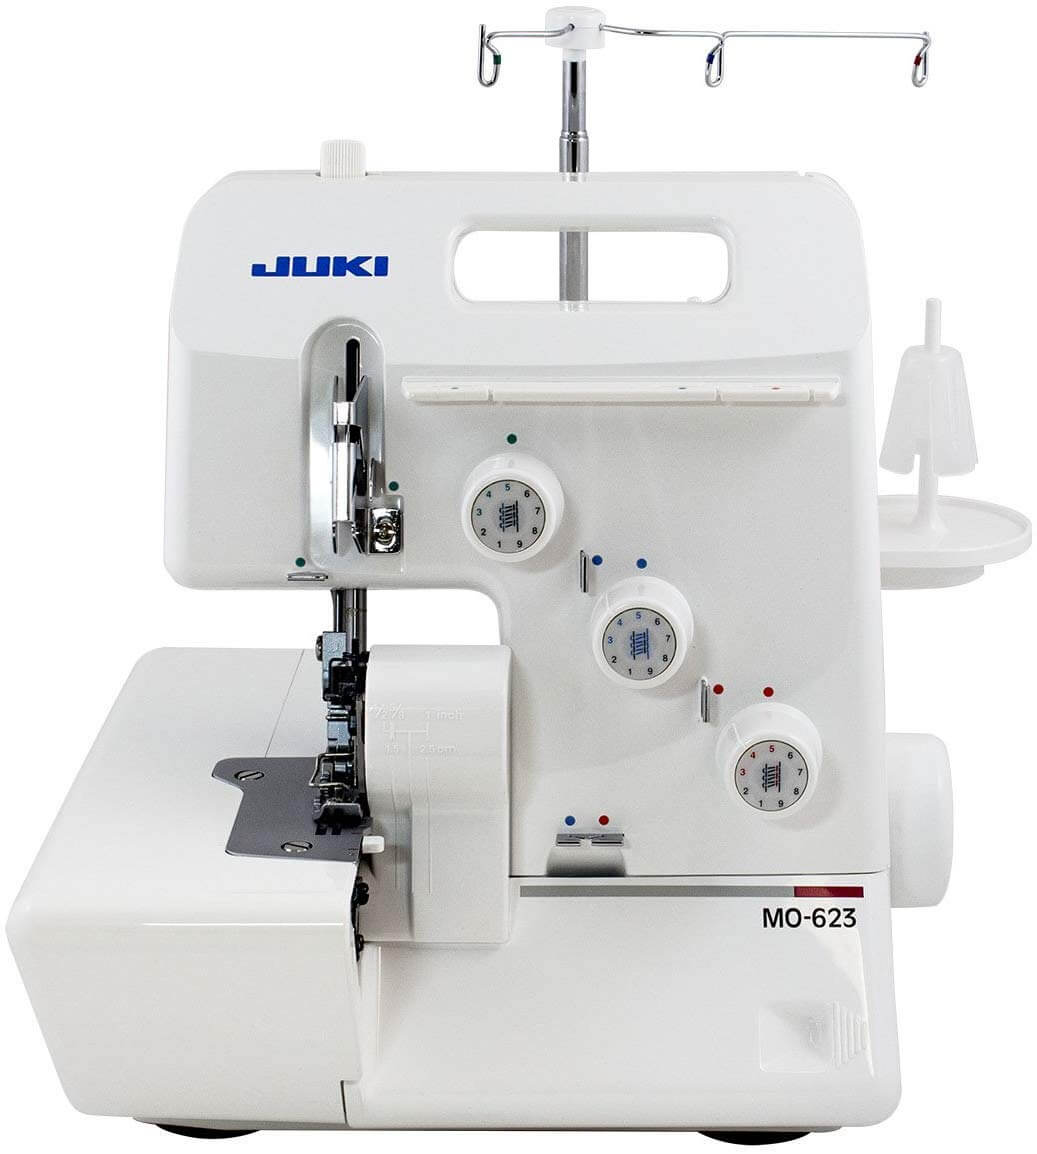 Juki MO-623 Overlock Machine 1-Needle, 3-Thread